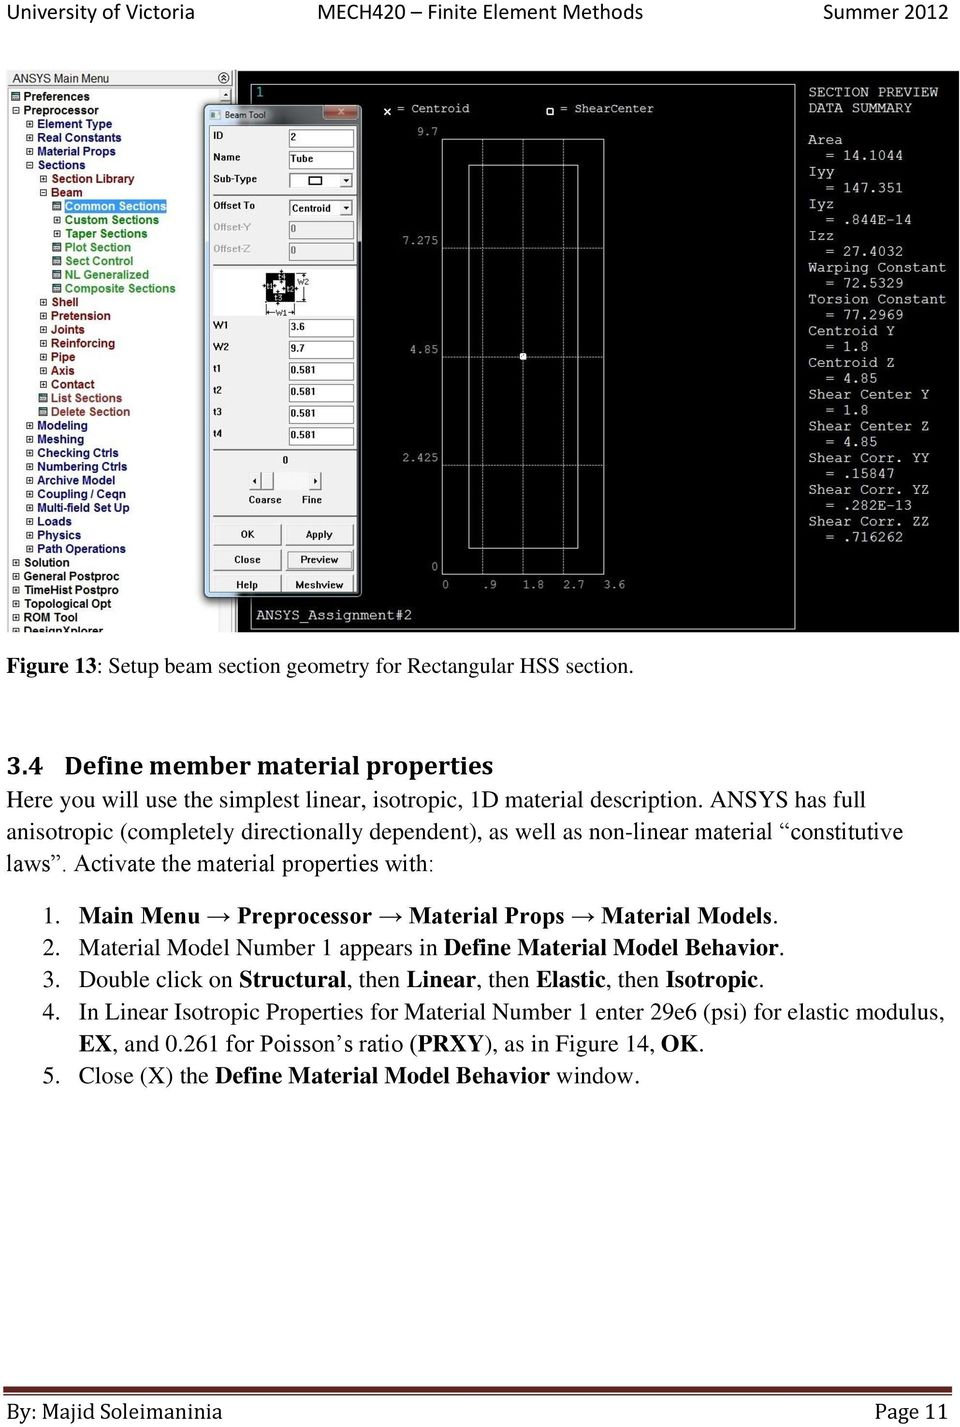 ansys tutorial pdf for mechanical engineering